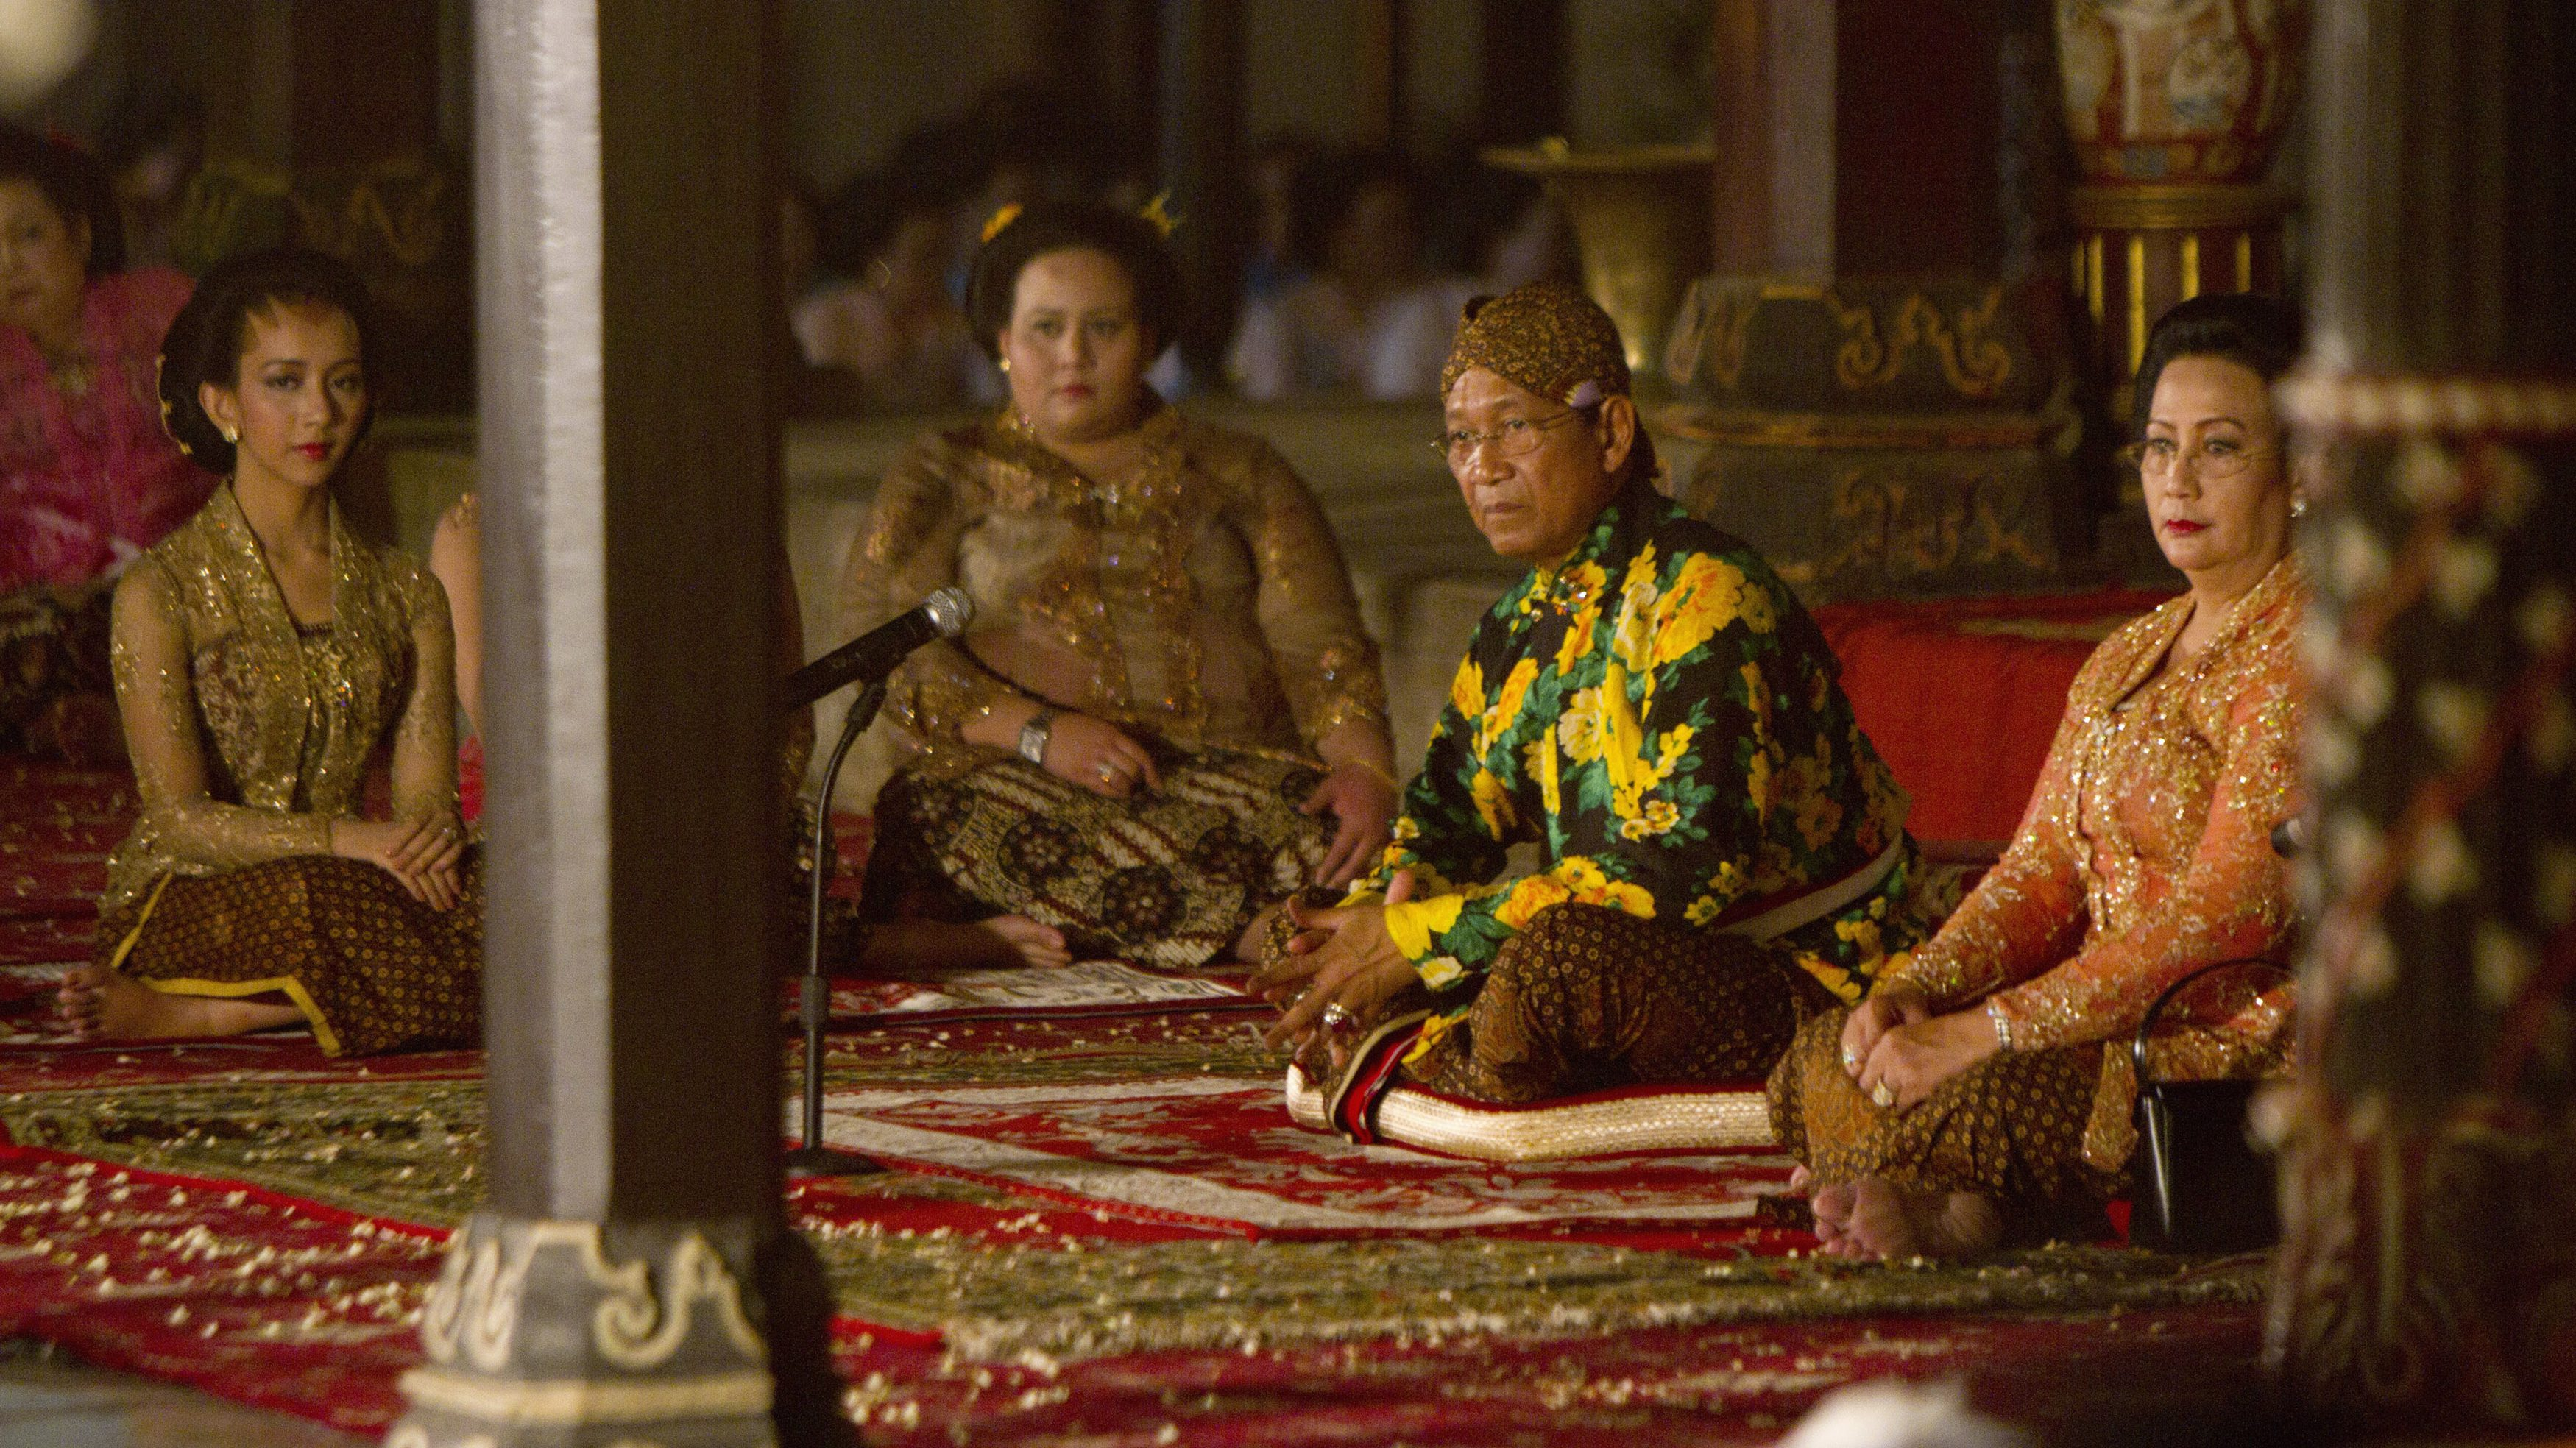 GKR Bendara, GKR Maduretno, Sultan Yogyakarta Hamengkubuwono X and his wife GKR Hemas sit on the floor during Tantingan ceremony the day before Bendara's wedding, at Yogyakarta Palace